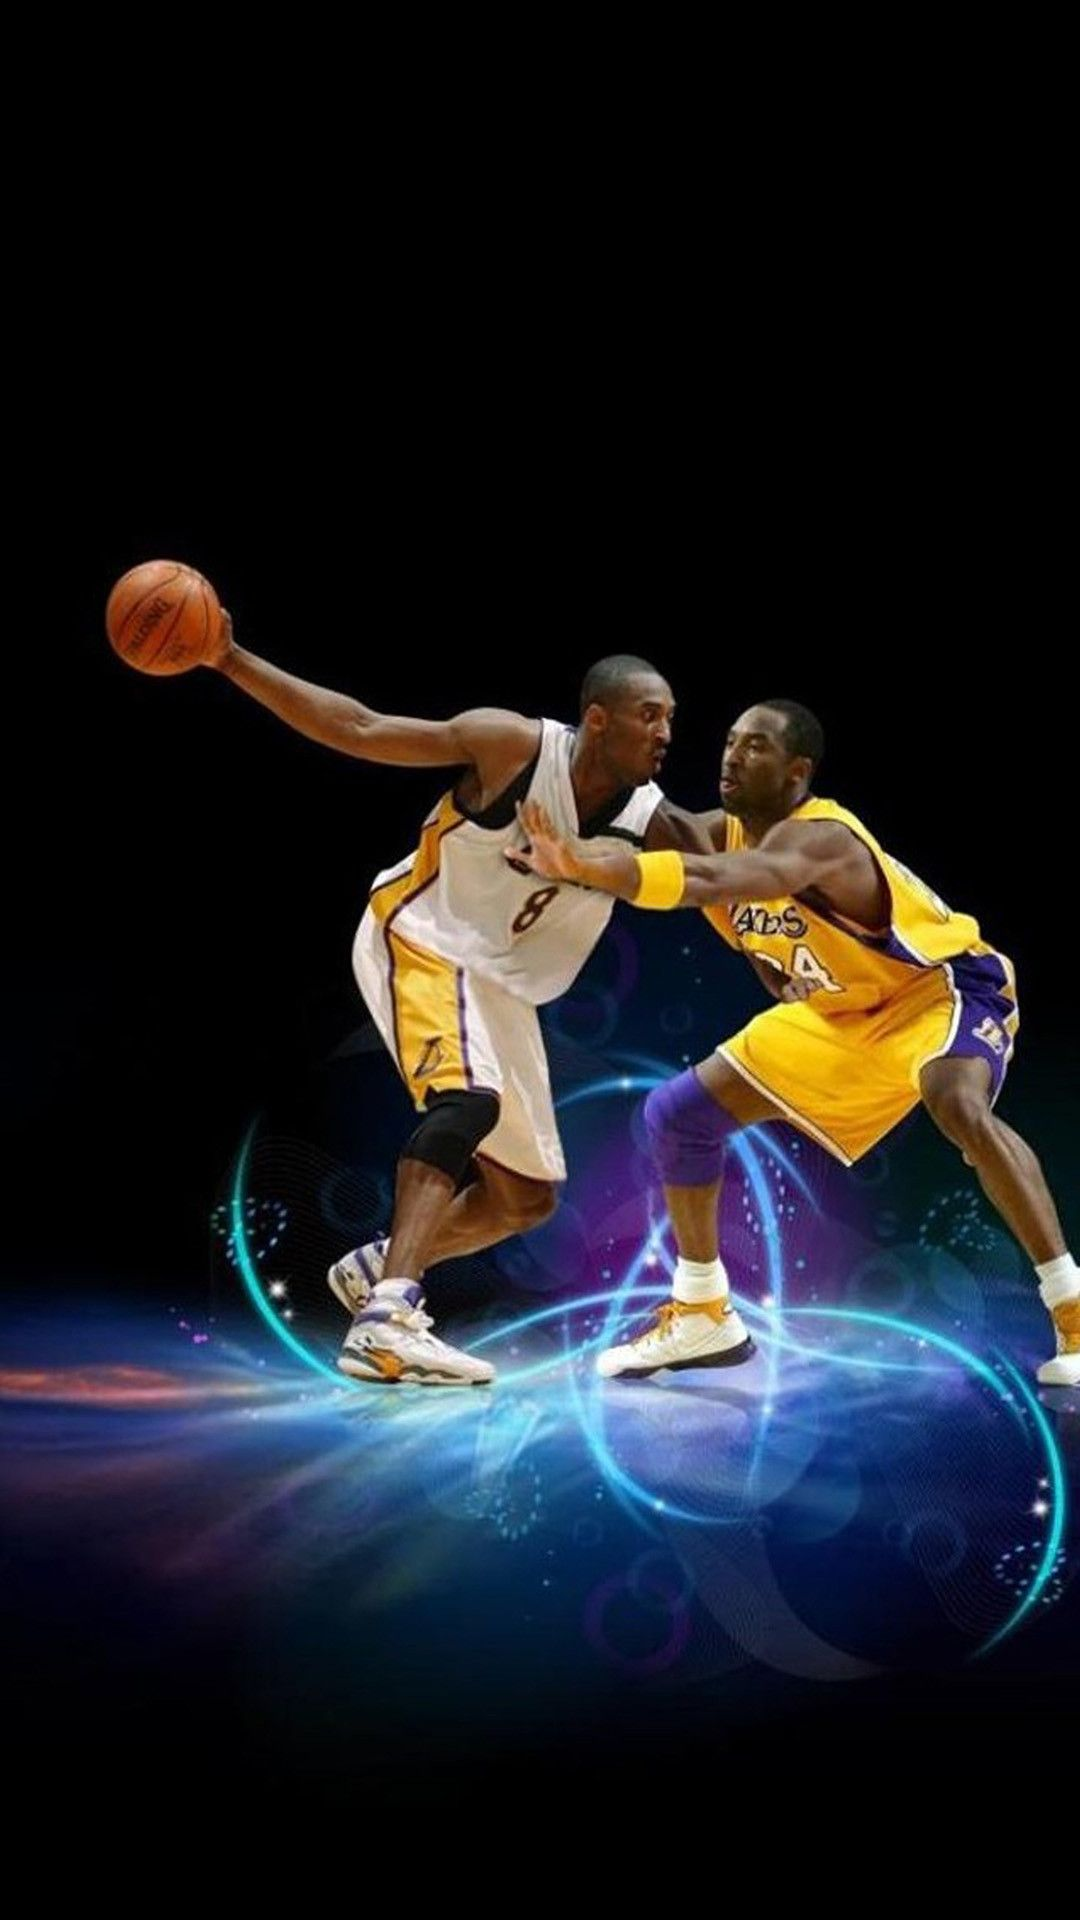 Cool Basketball Android Background In 2020 Kobe Bryant Wallpaper Kobe Bryant Kobe Bryant Pictures